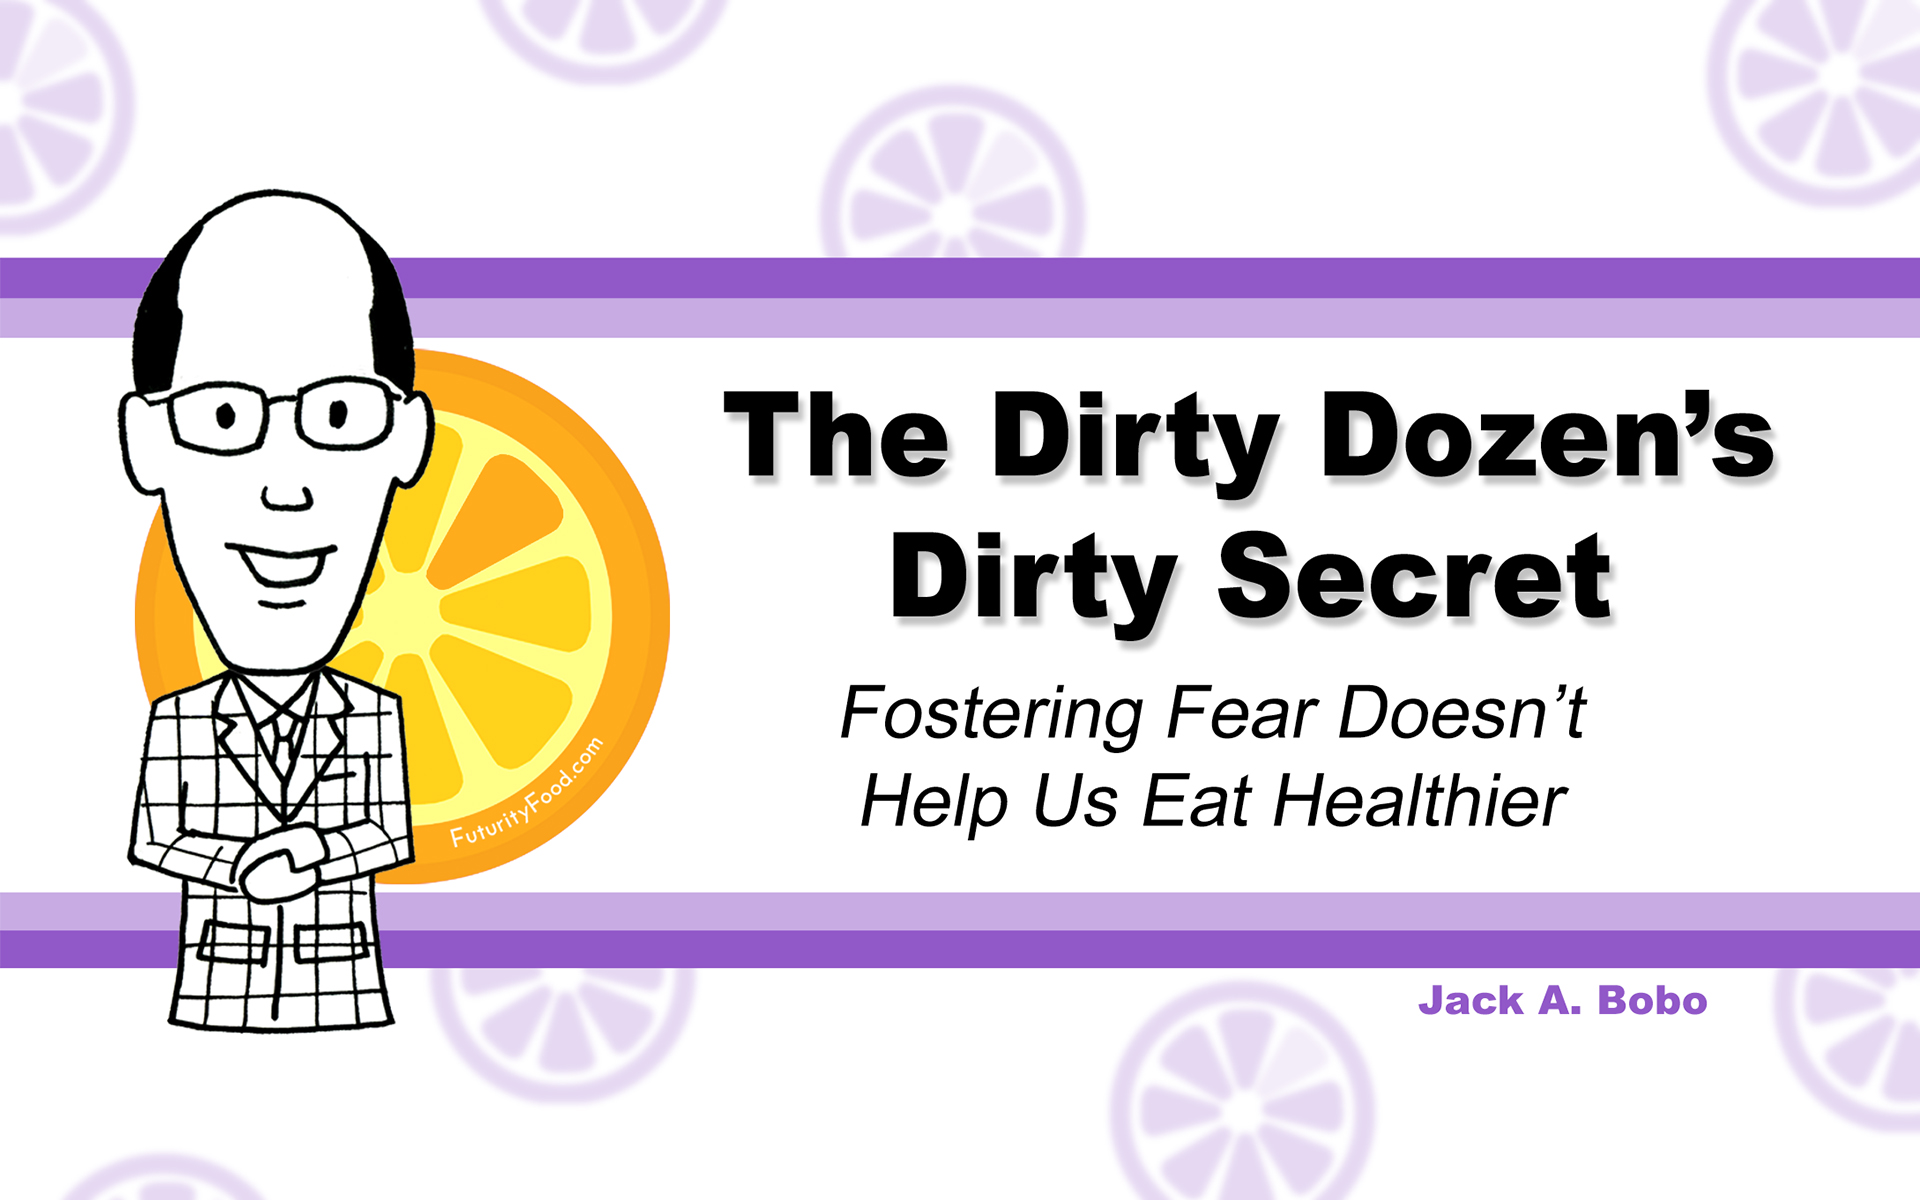 The Dirty Dozen's Dirty Secret